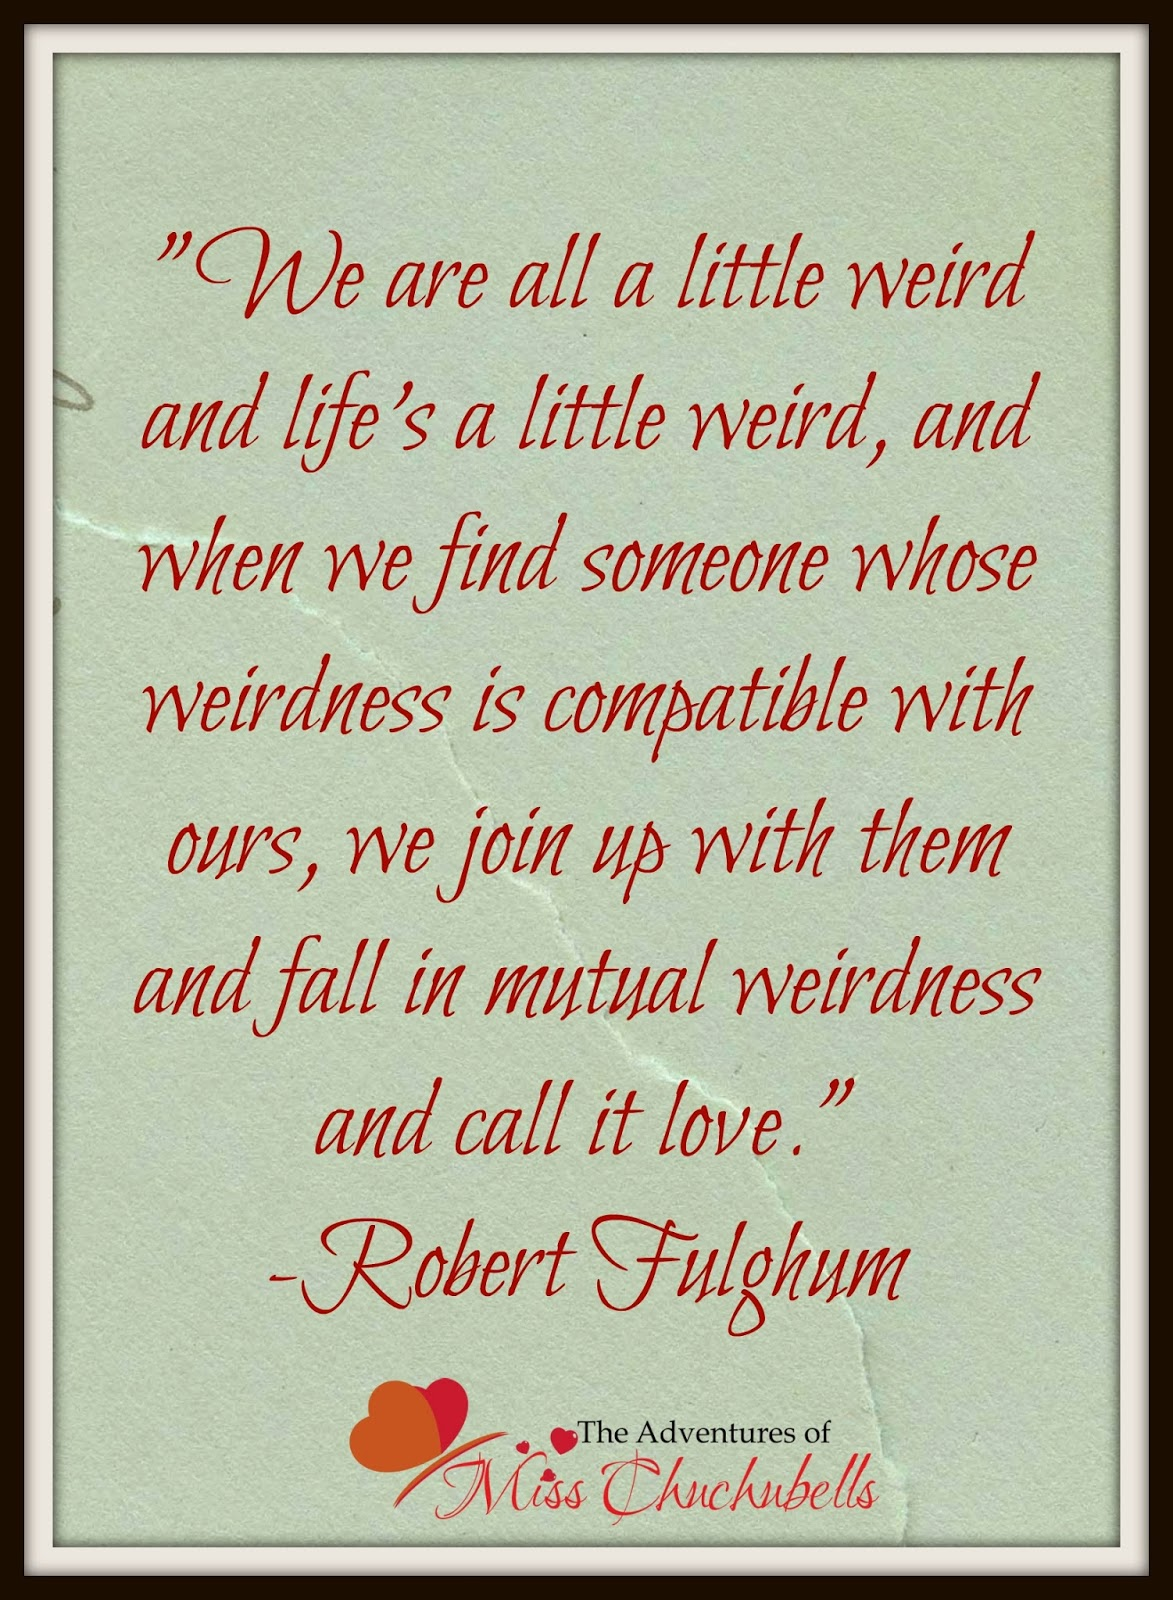 Cheesy Love Quotes Romantic And Not Too Cheesy Love Quotes  The Adventures Of Miss